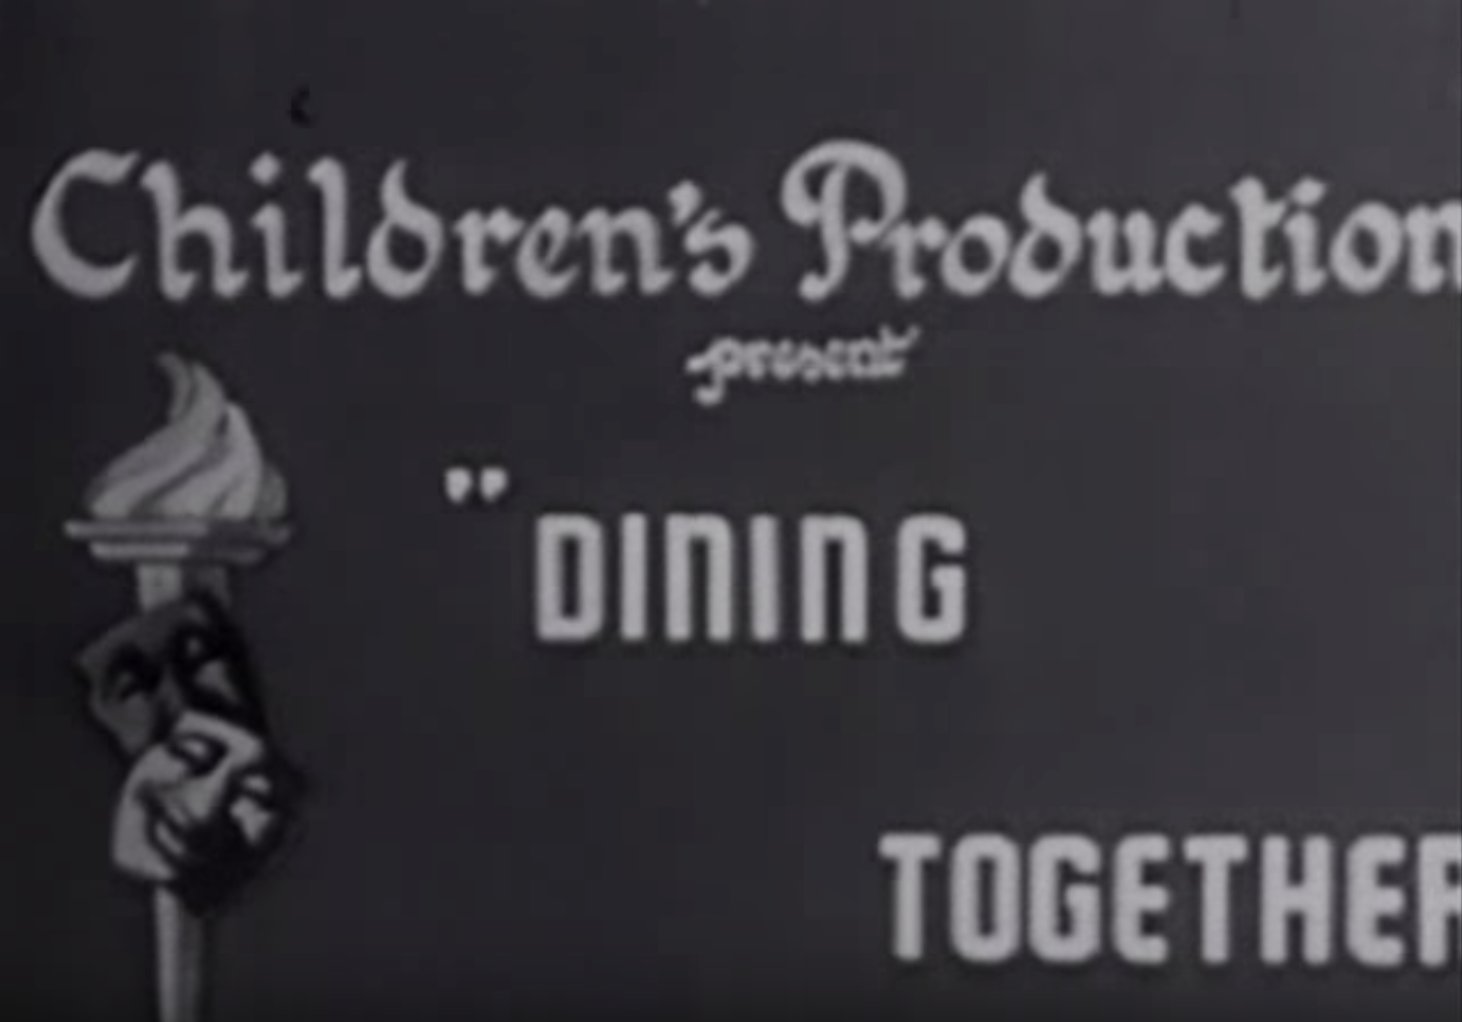 Thanksgiving: Dining Together